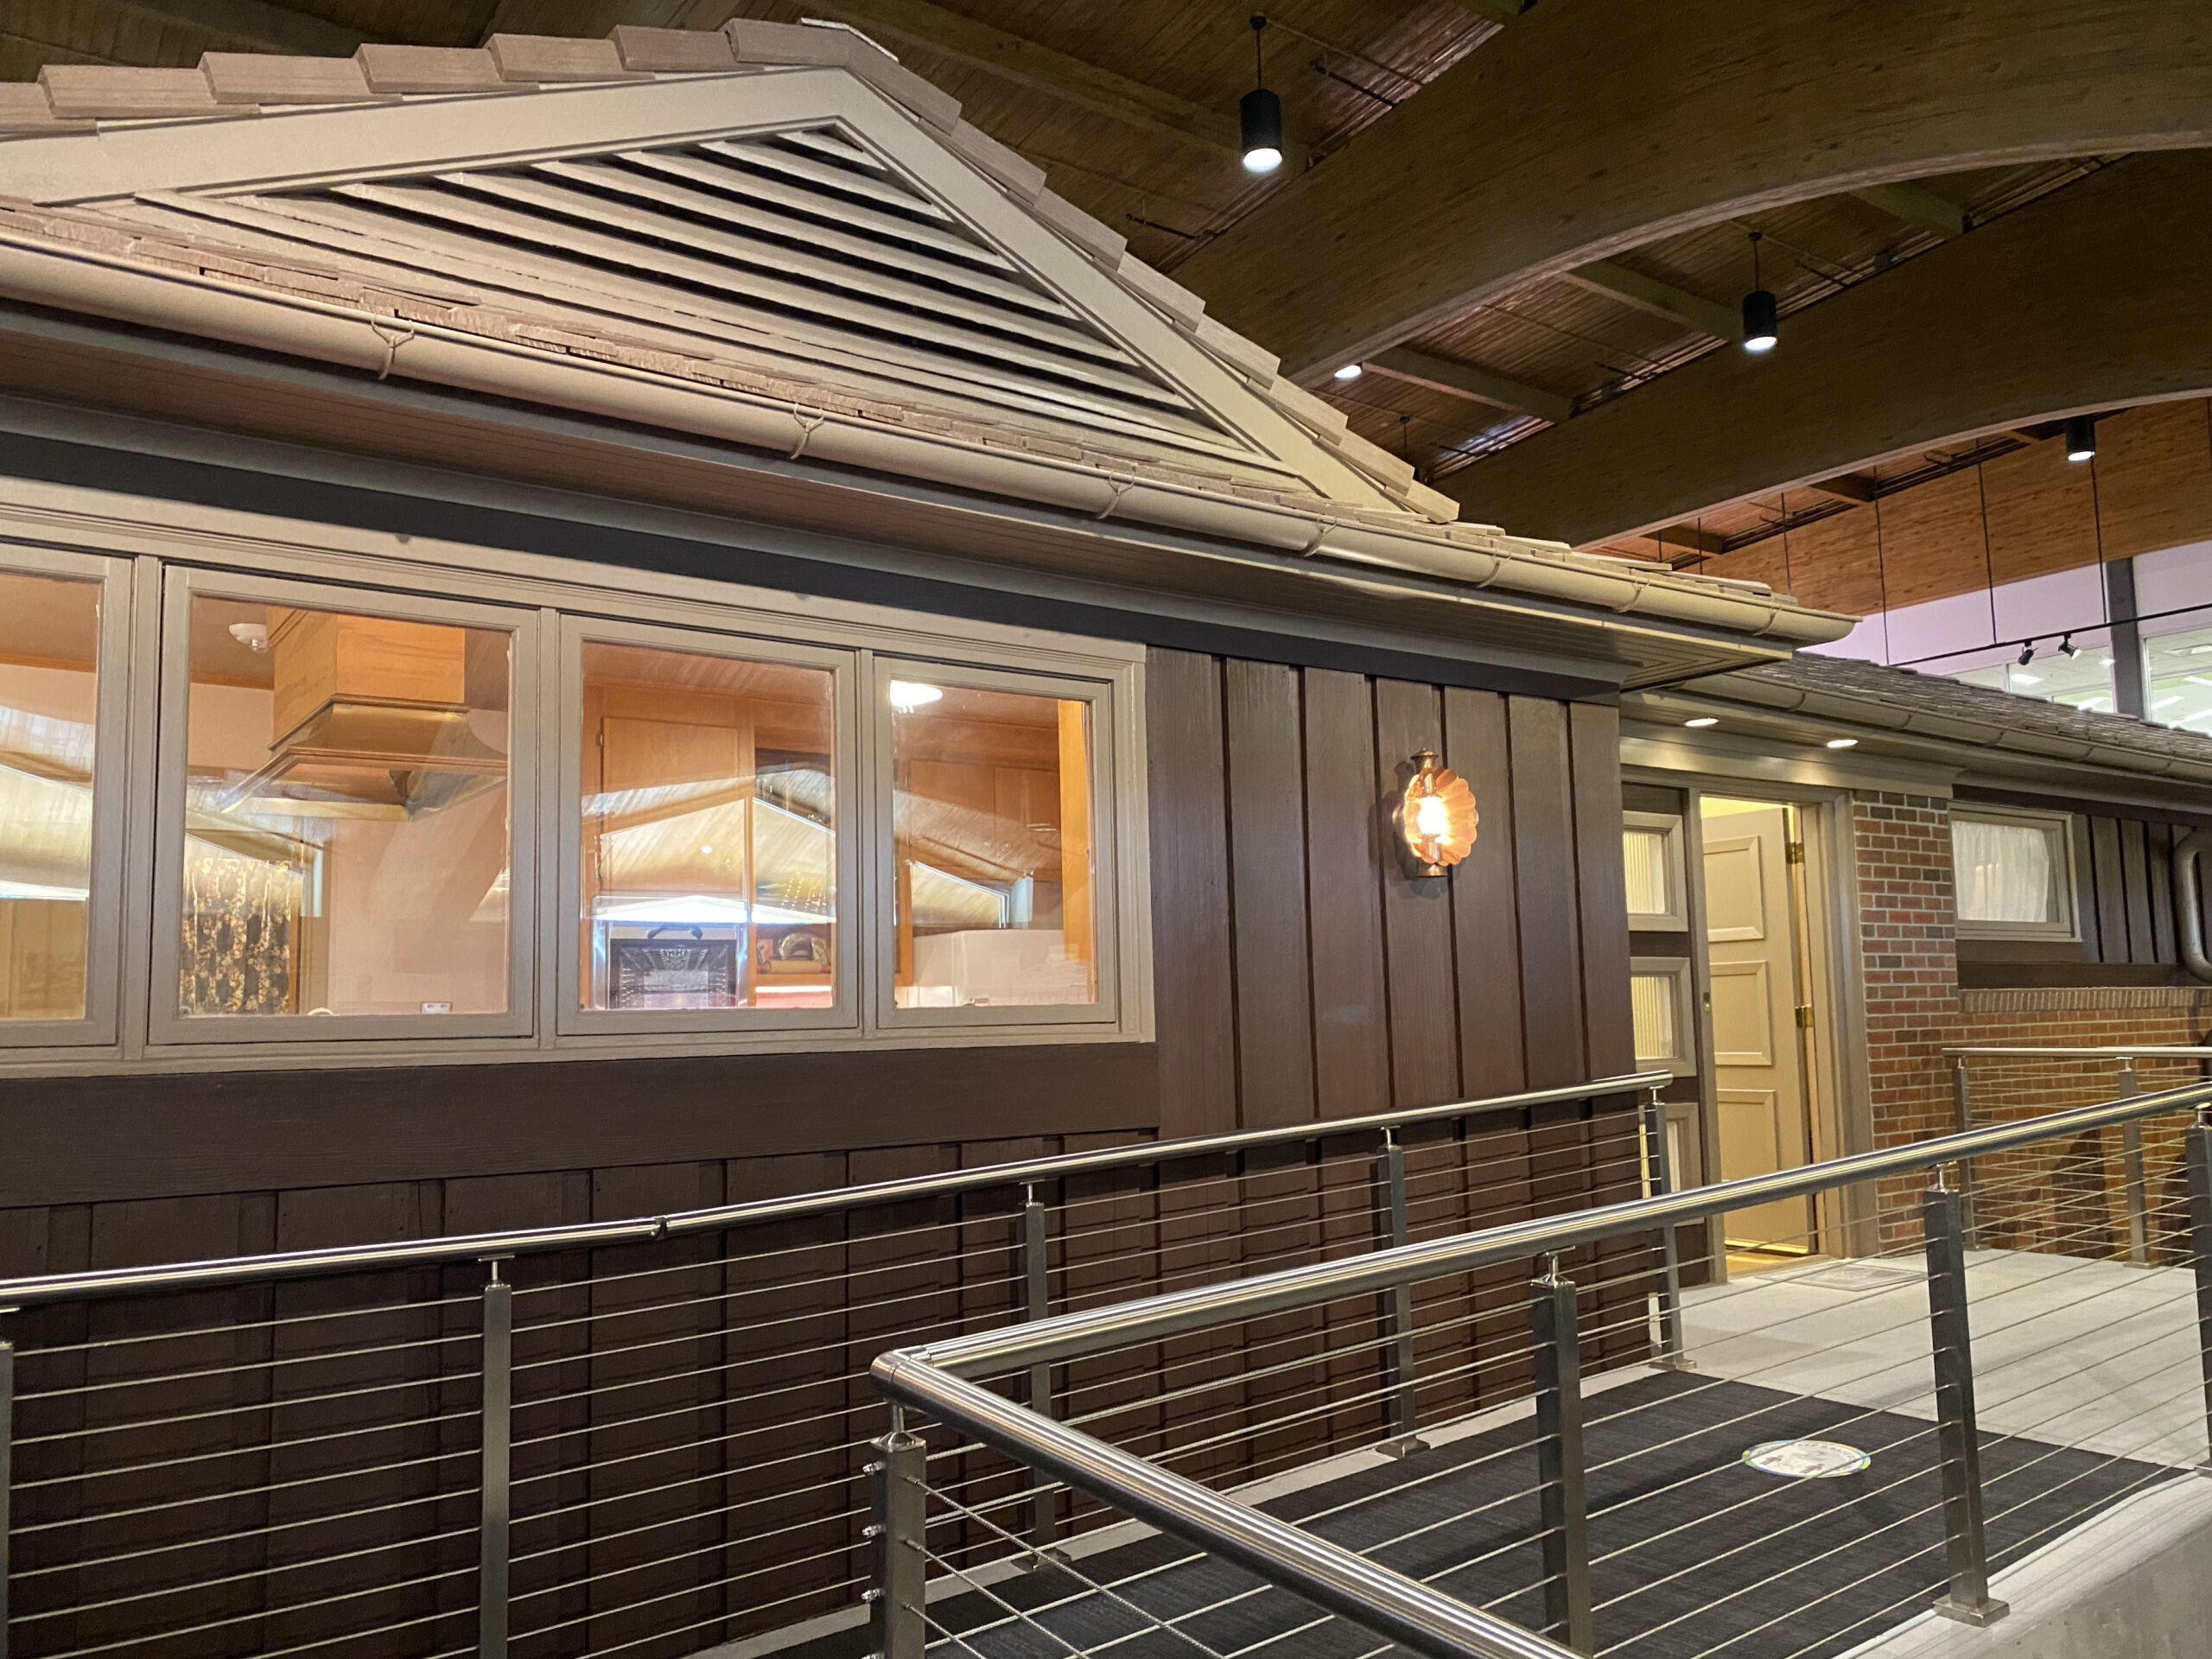 Exterior of 1950s All-Electric House at the Johnson County Museum in Overland Park, Kansas